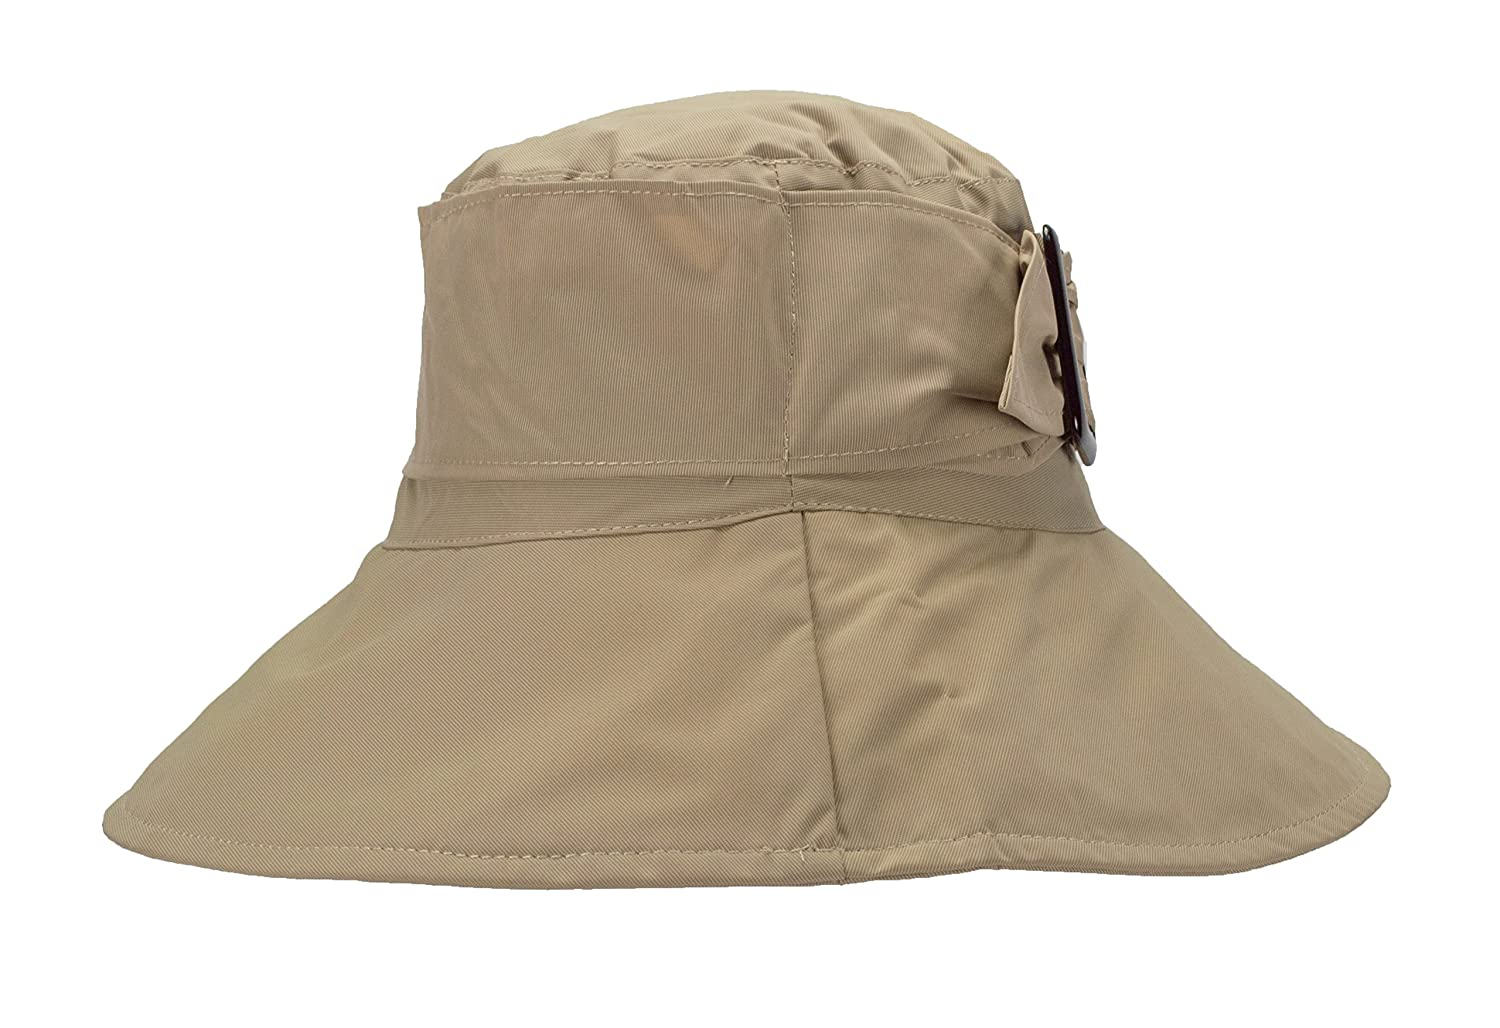 3.5 inch Wide Brim FLH Cute Bucket Rain Hat w//Buckle Accent Roll-Up Packable